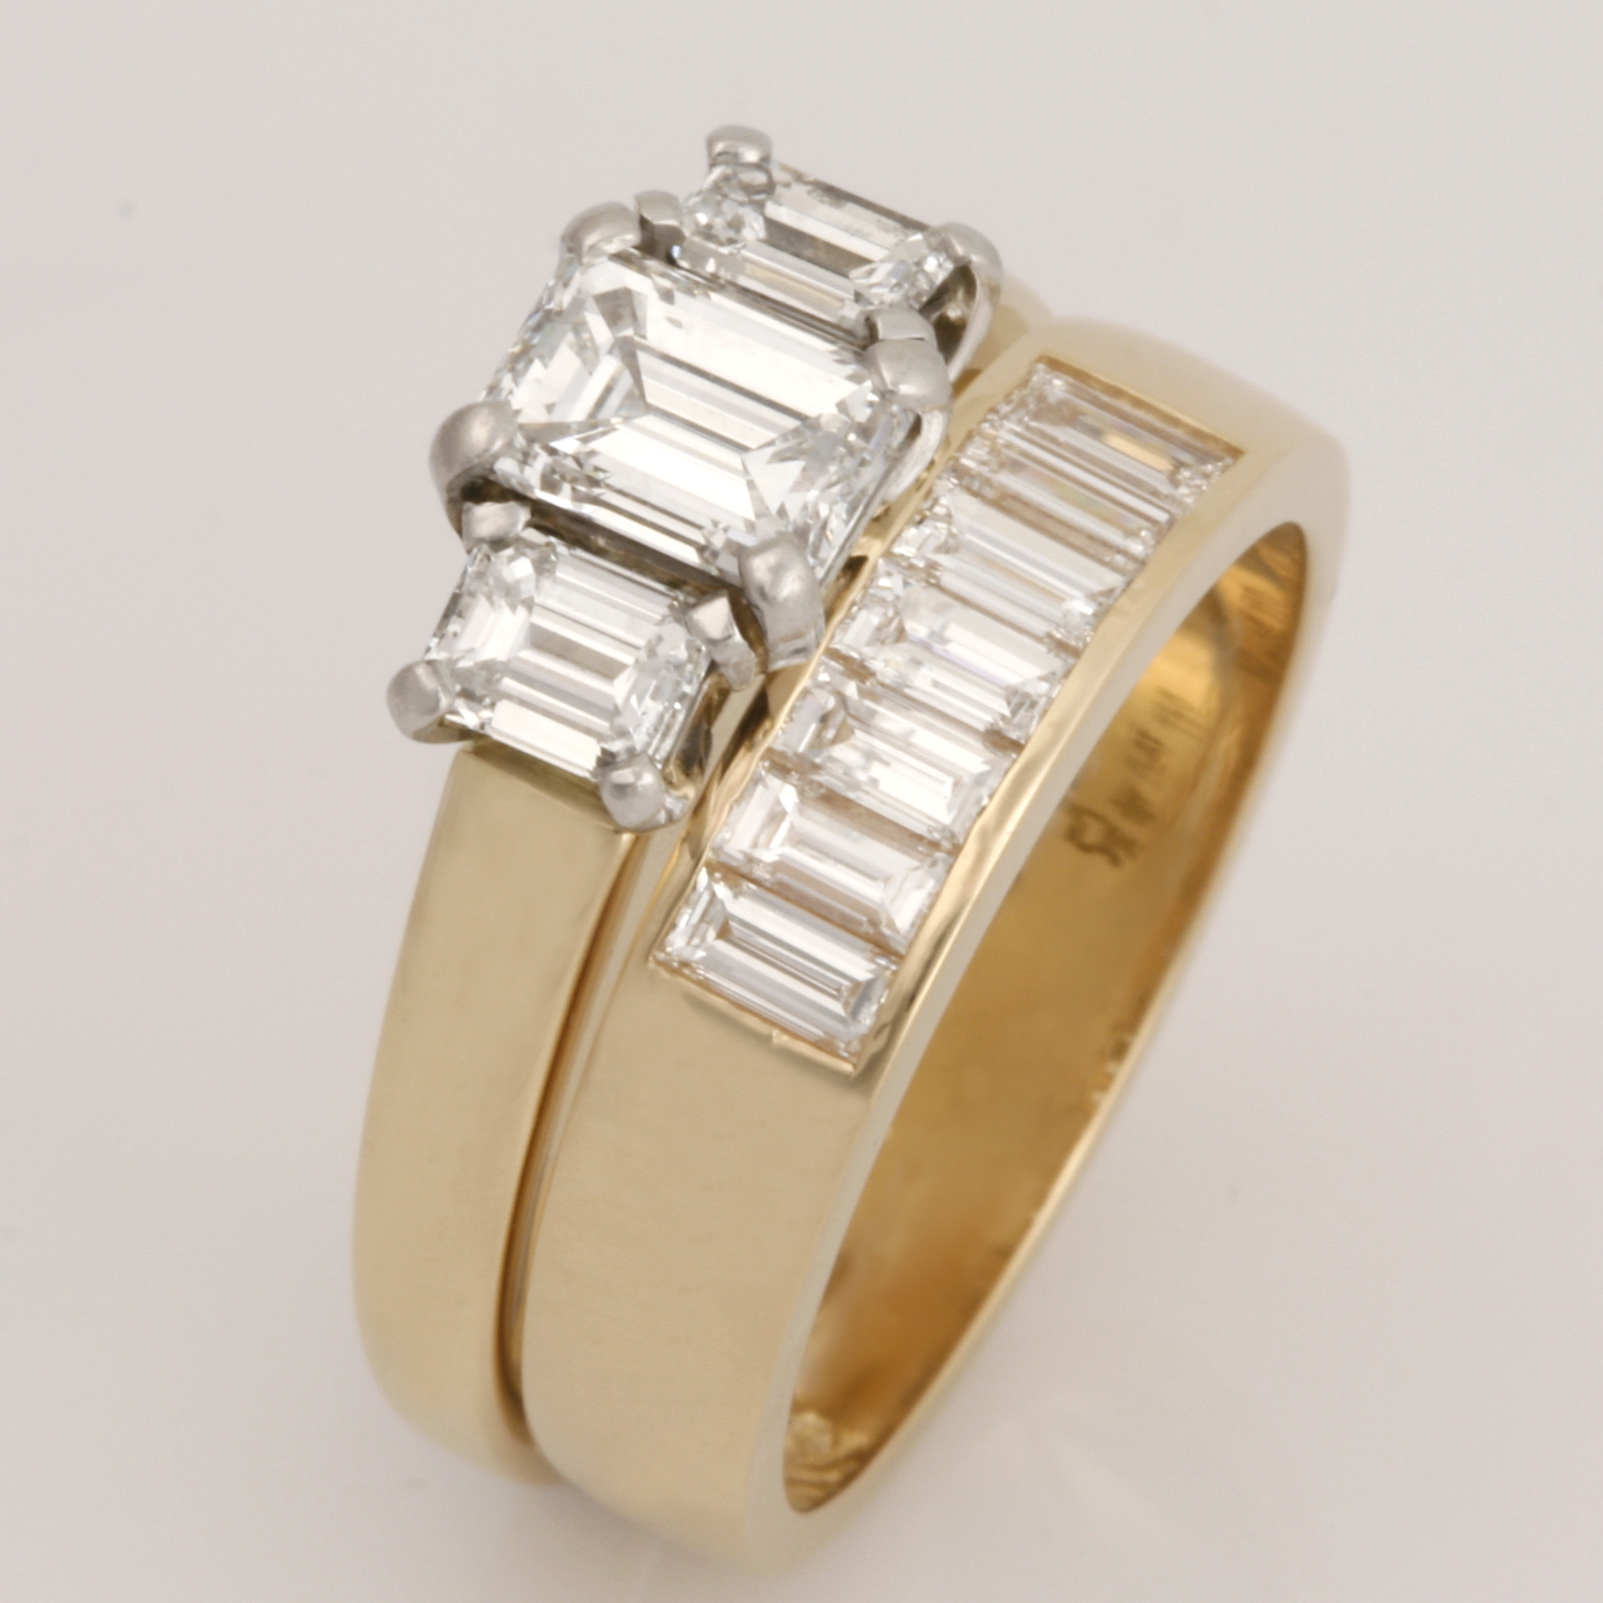 Handmade ladies 18ct yellow gold baguette diamond eternity ring